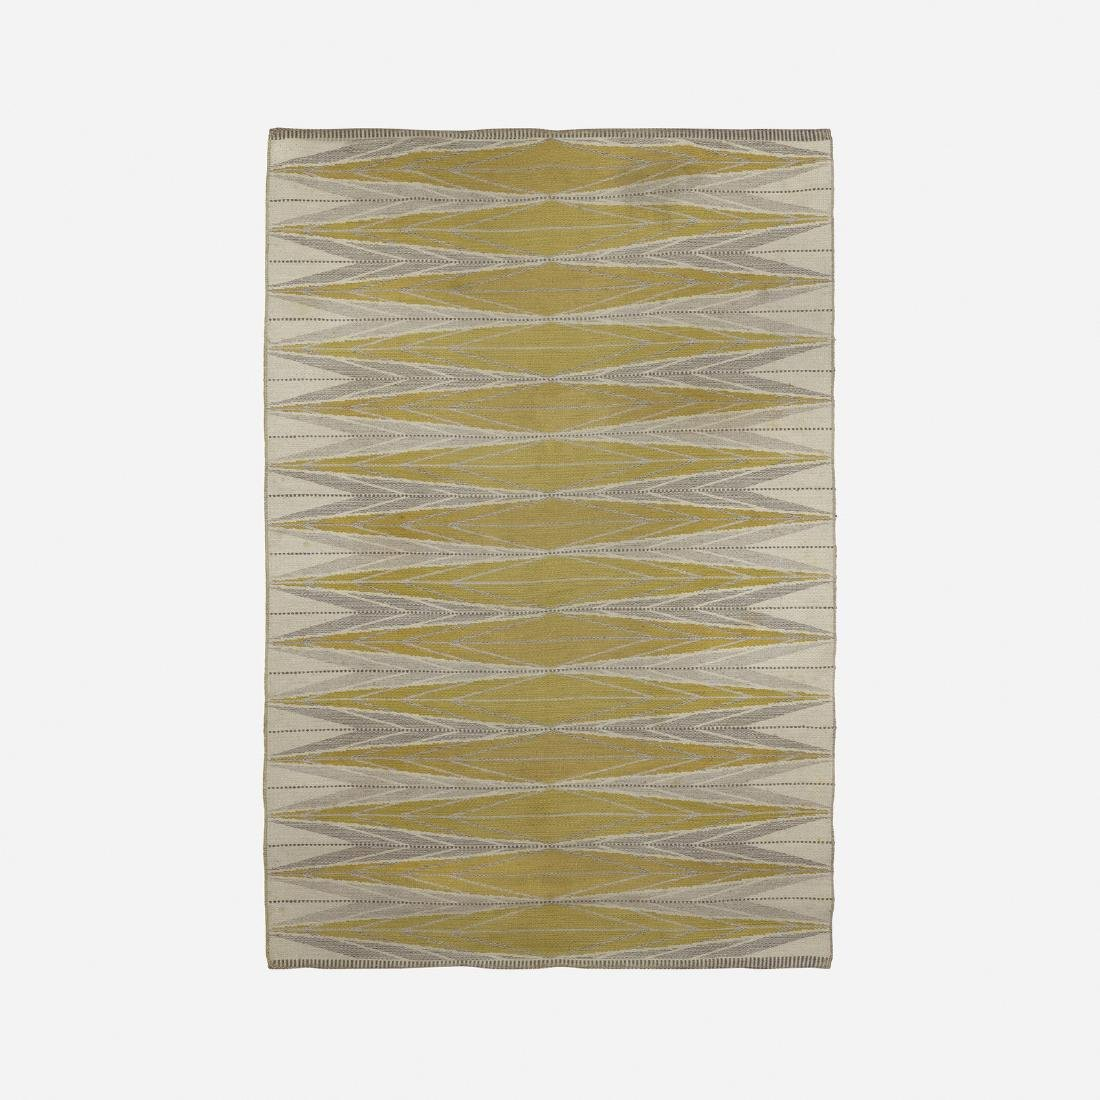 Ingrid Dessau, reversible flatweave carpet